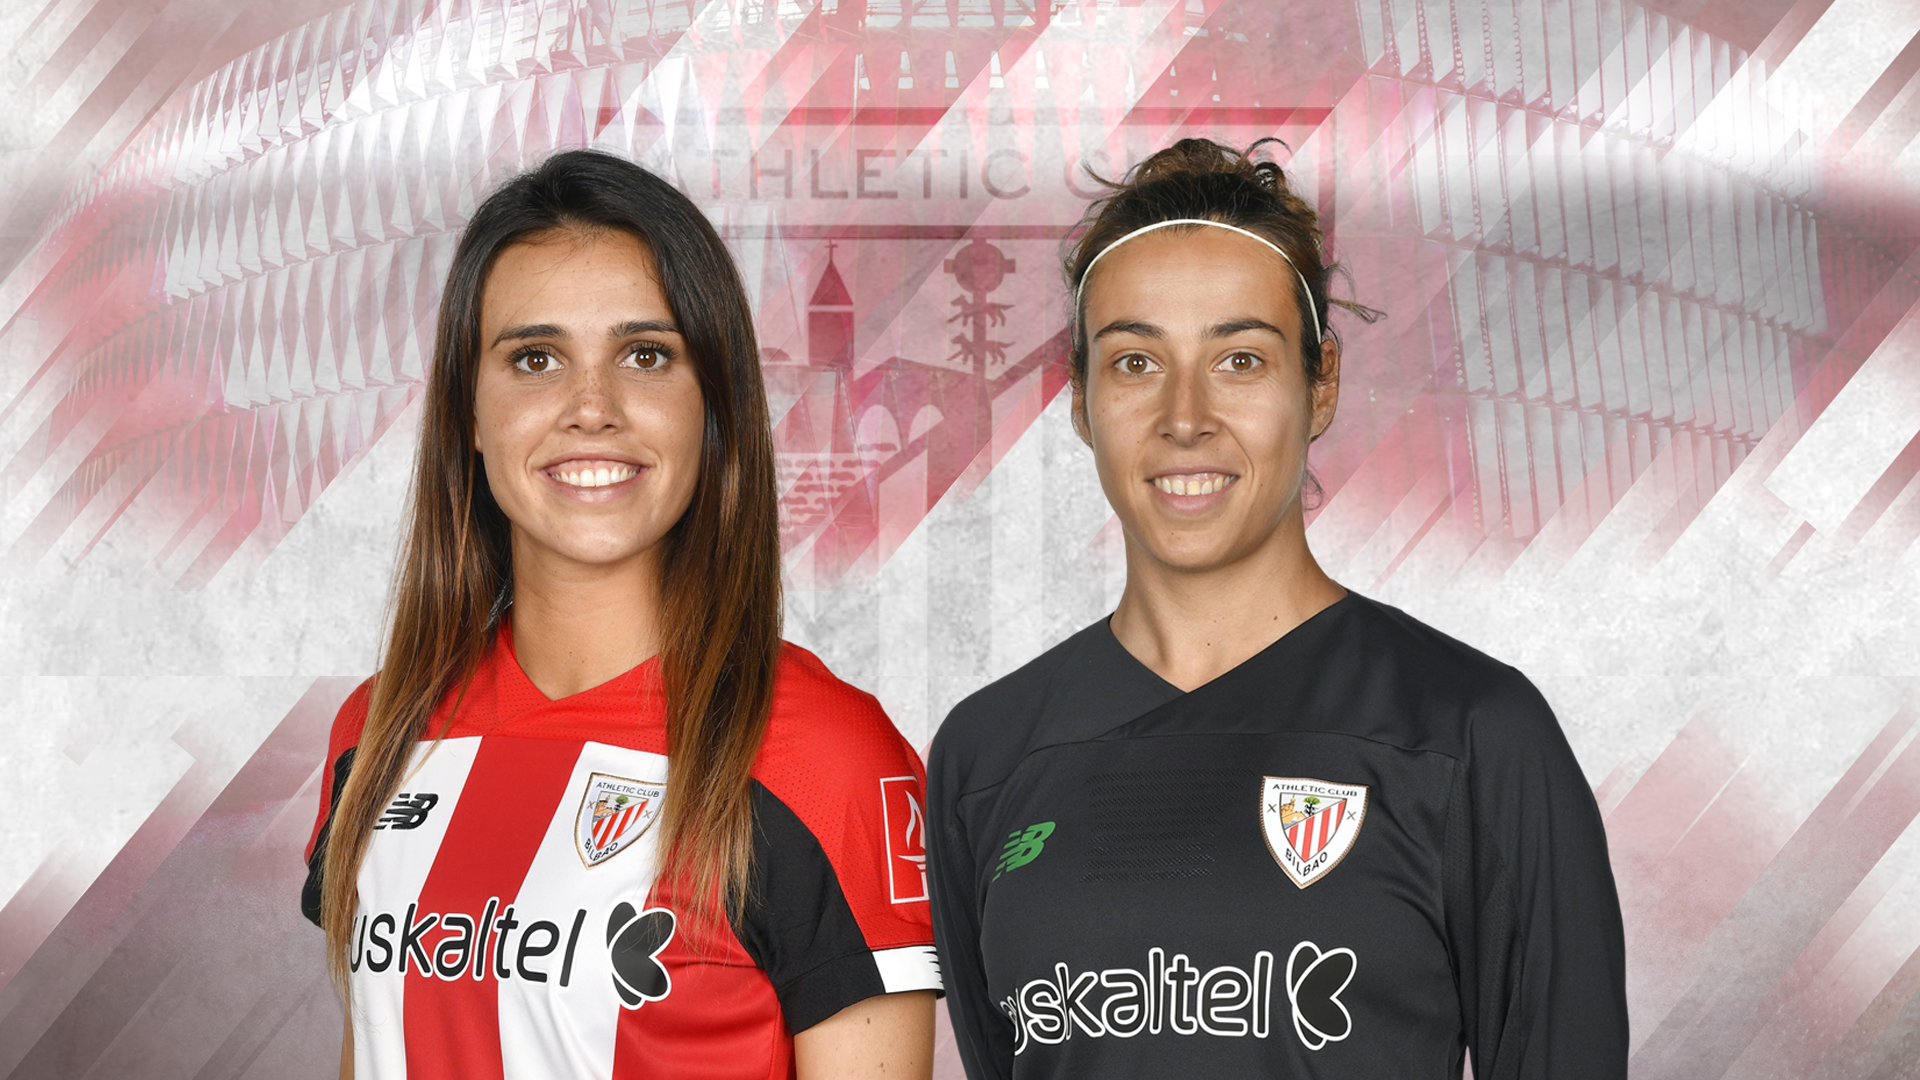 Jone Ibañez and Ainhoa Tirapu will have to go through surgery